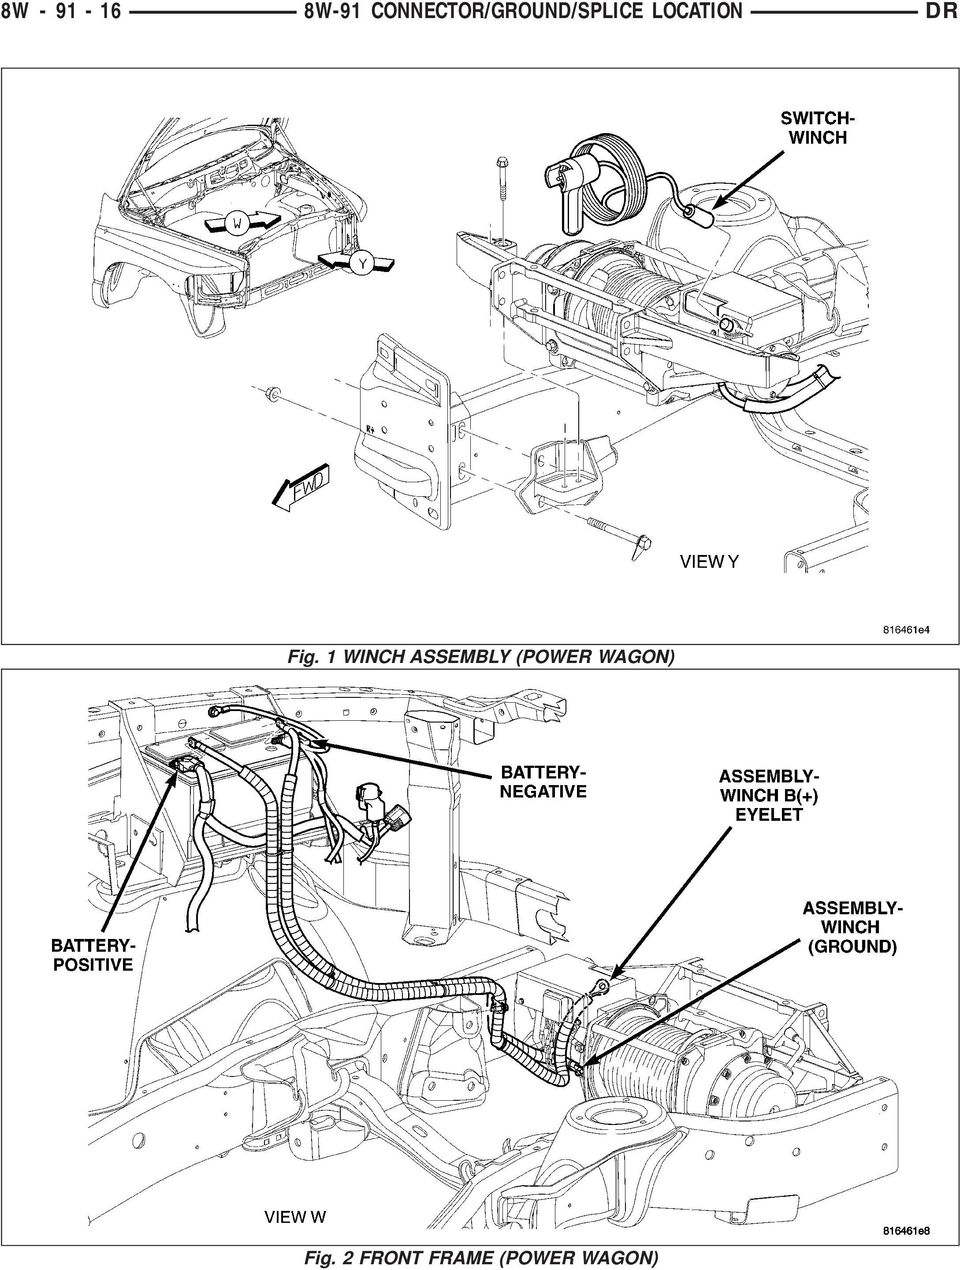 Connector Ground Splice Location Pdf 2007 Jeep Wrangler Gas Tank Diagram Dr Fig